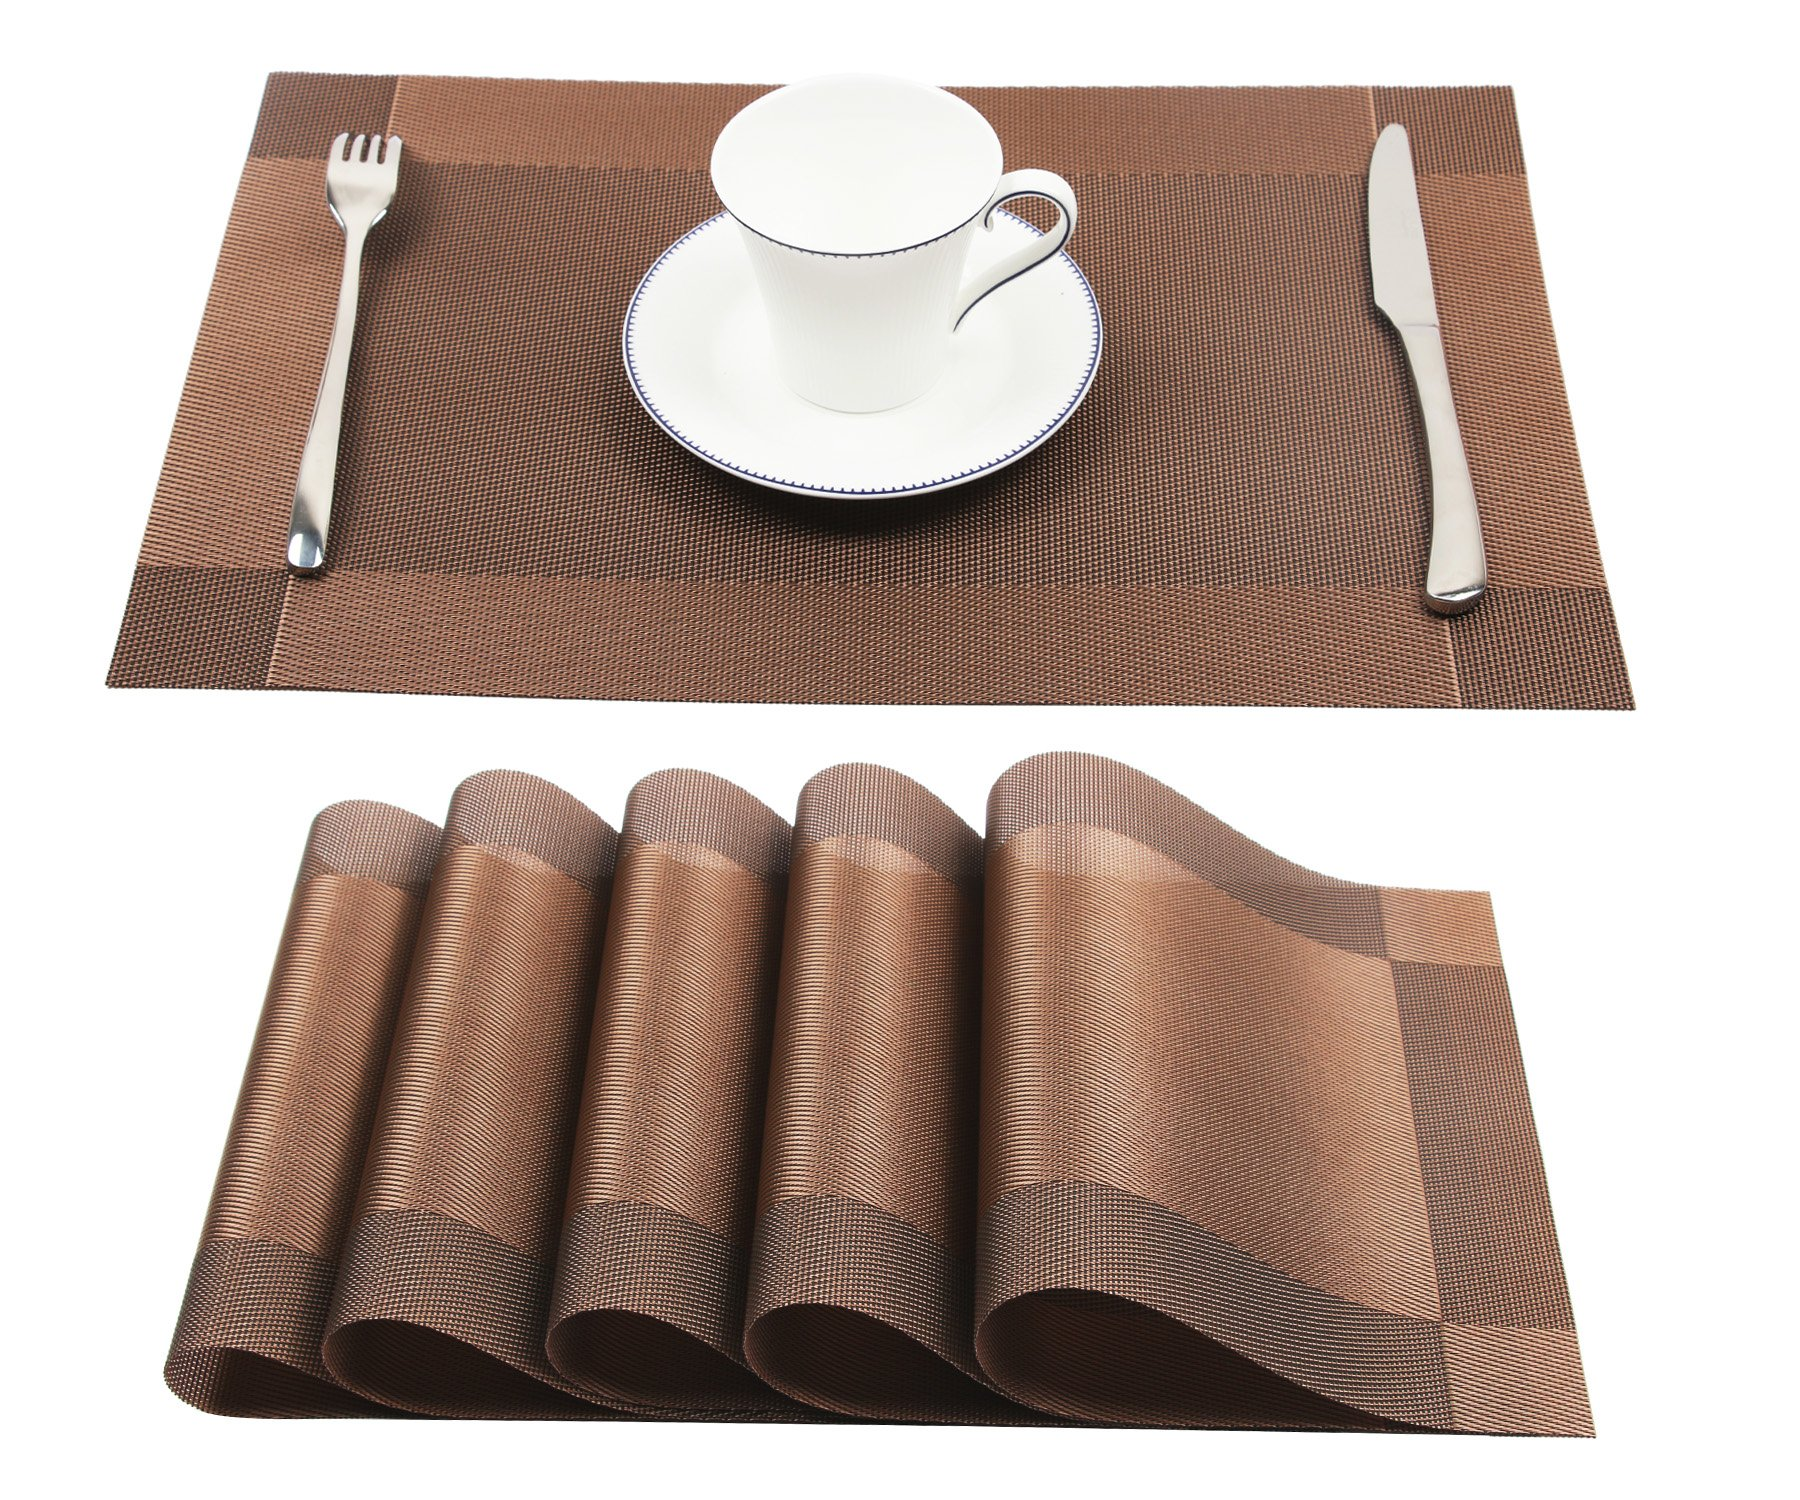 Homcomoda Vinyl Brown Placemats Heat Resistant Dining Table Mats Non-slip Washable Place Mats Set of 6(Brown)